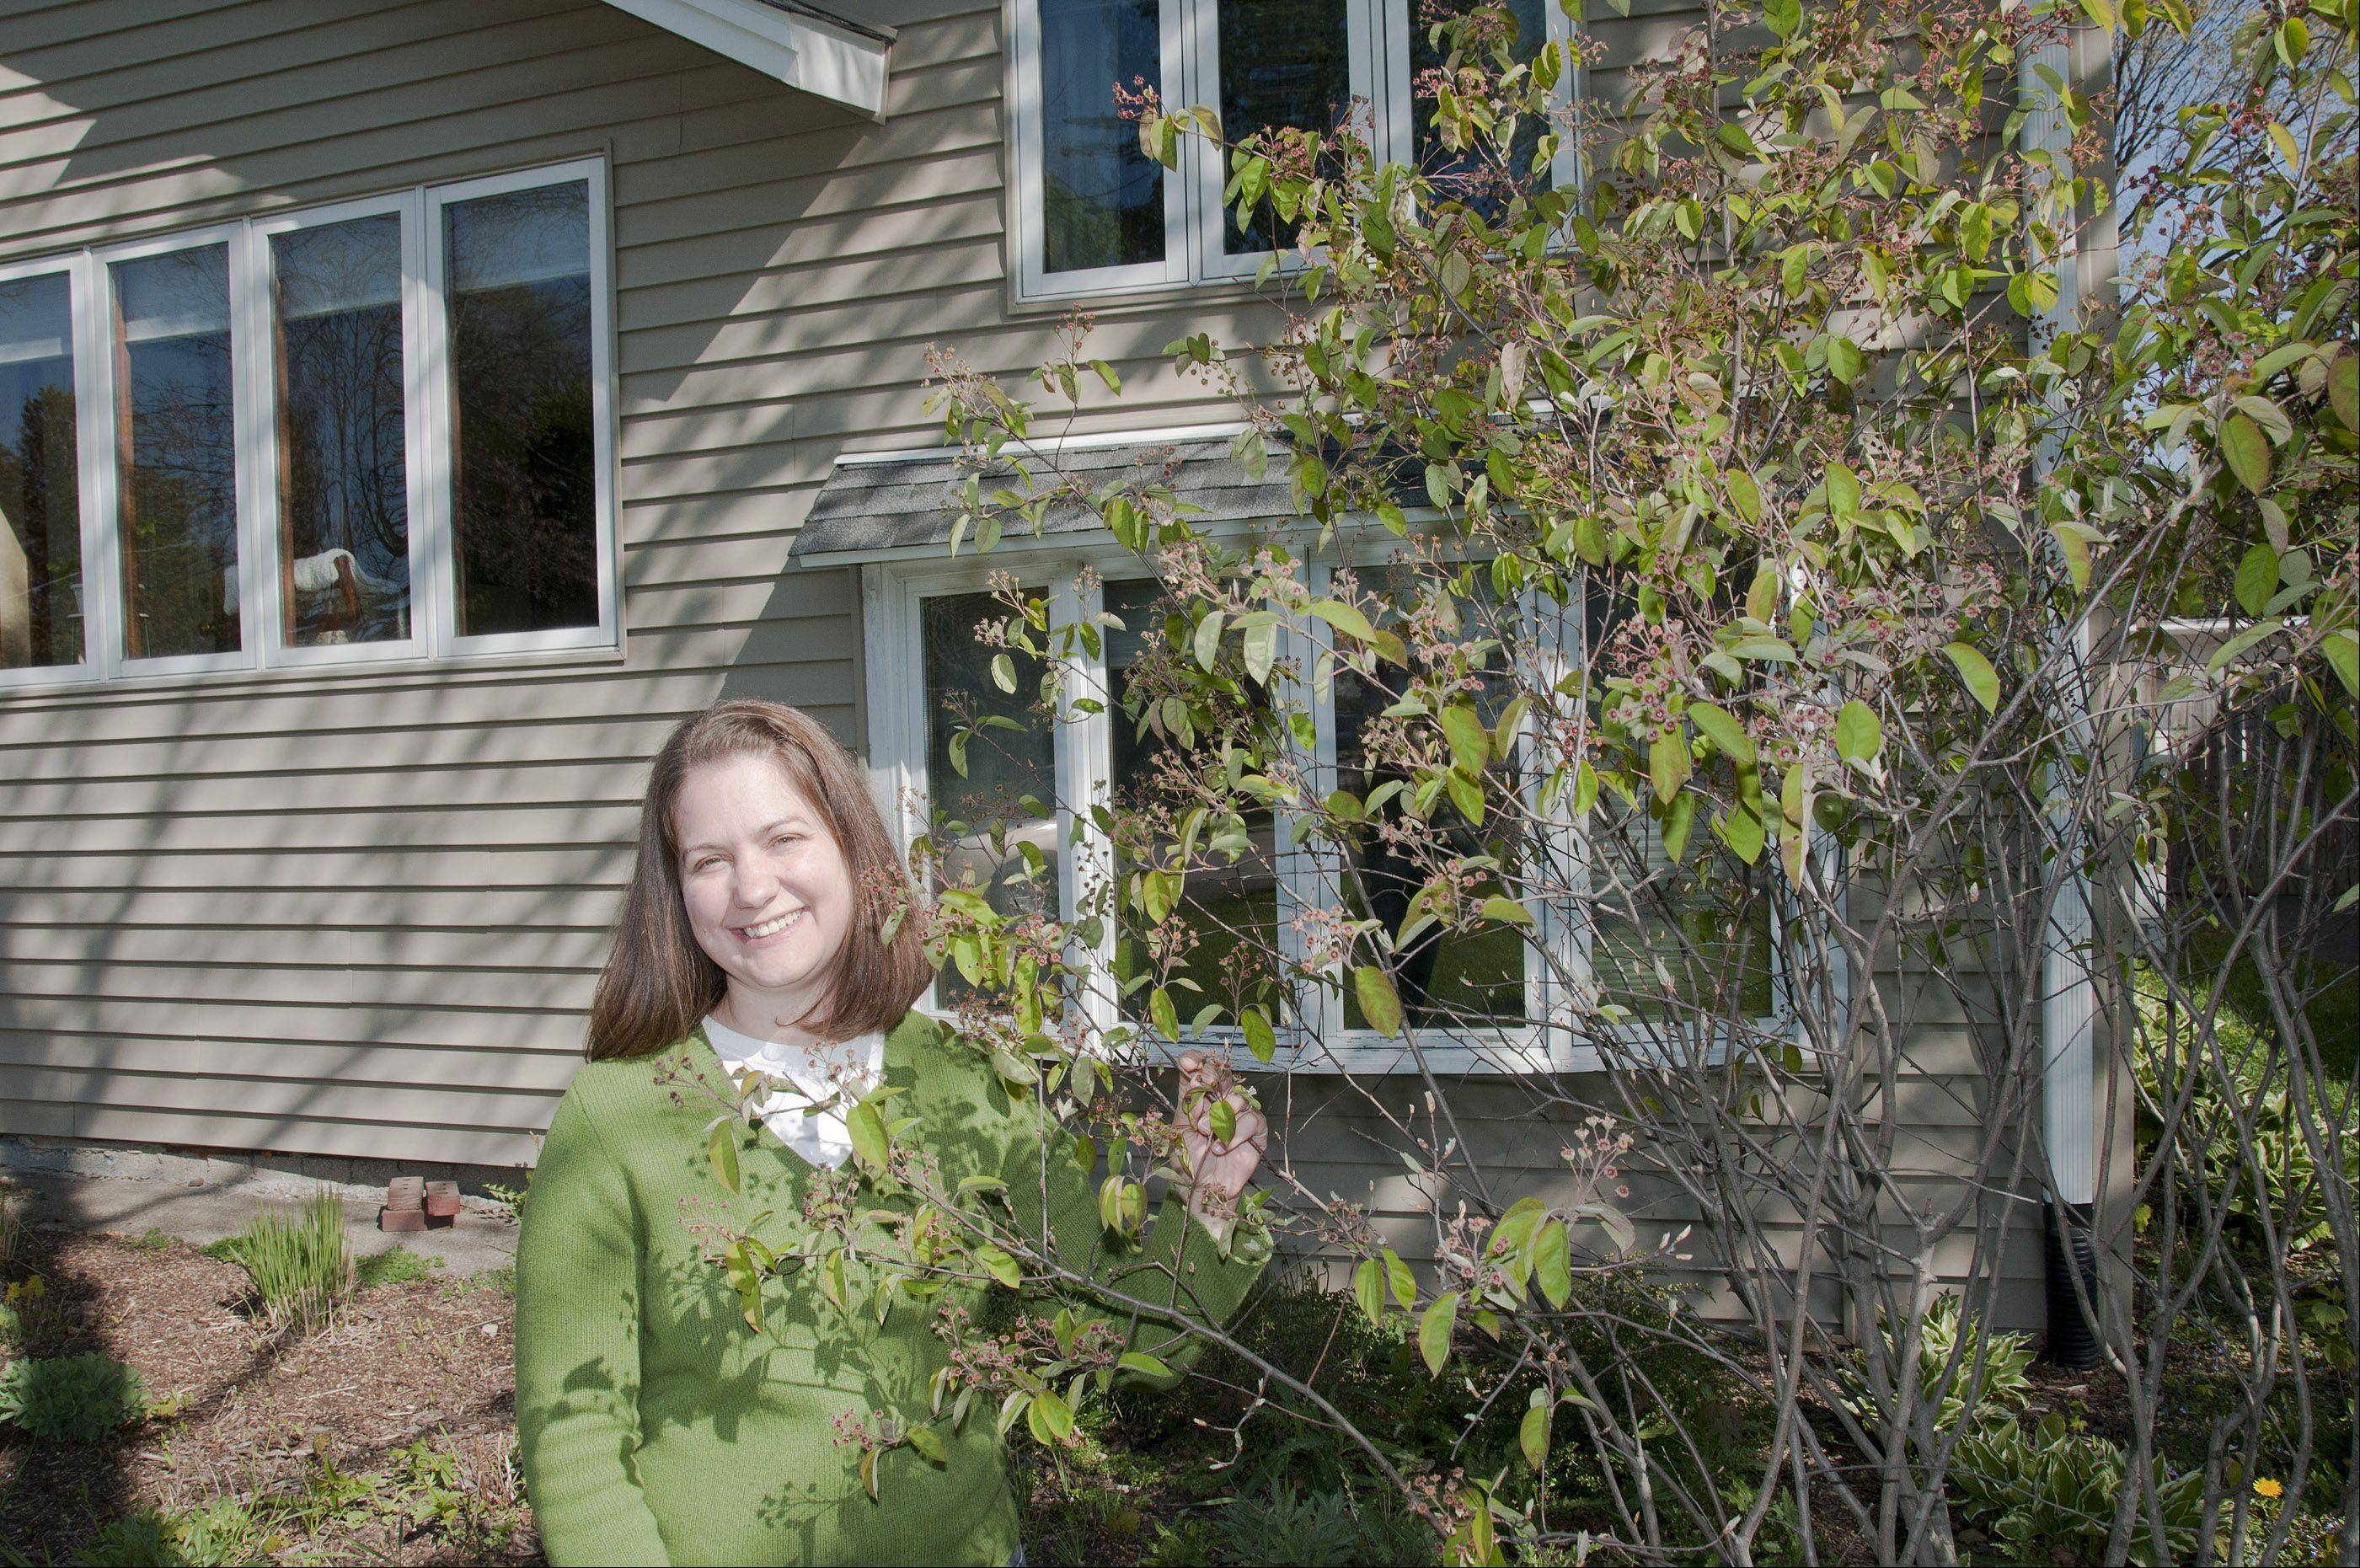 Emily Prasad of Lombard is promoting the benefits of eating food grown locally by starting a co-op called Eat Local DuPage and growing several edible plants in her yard, including this serviceberry shrub.